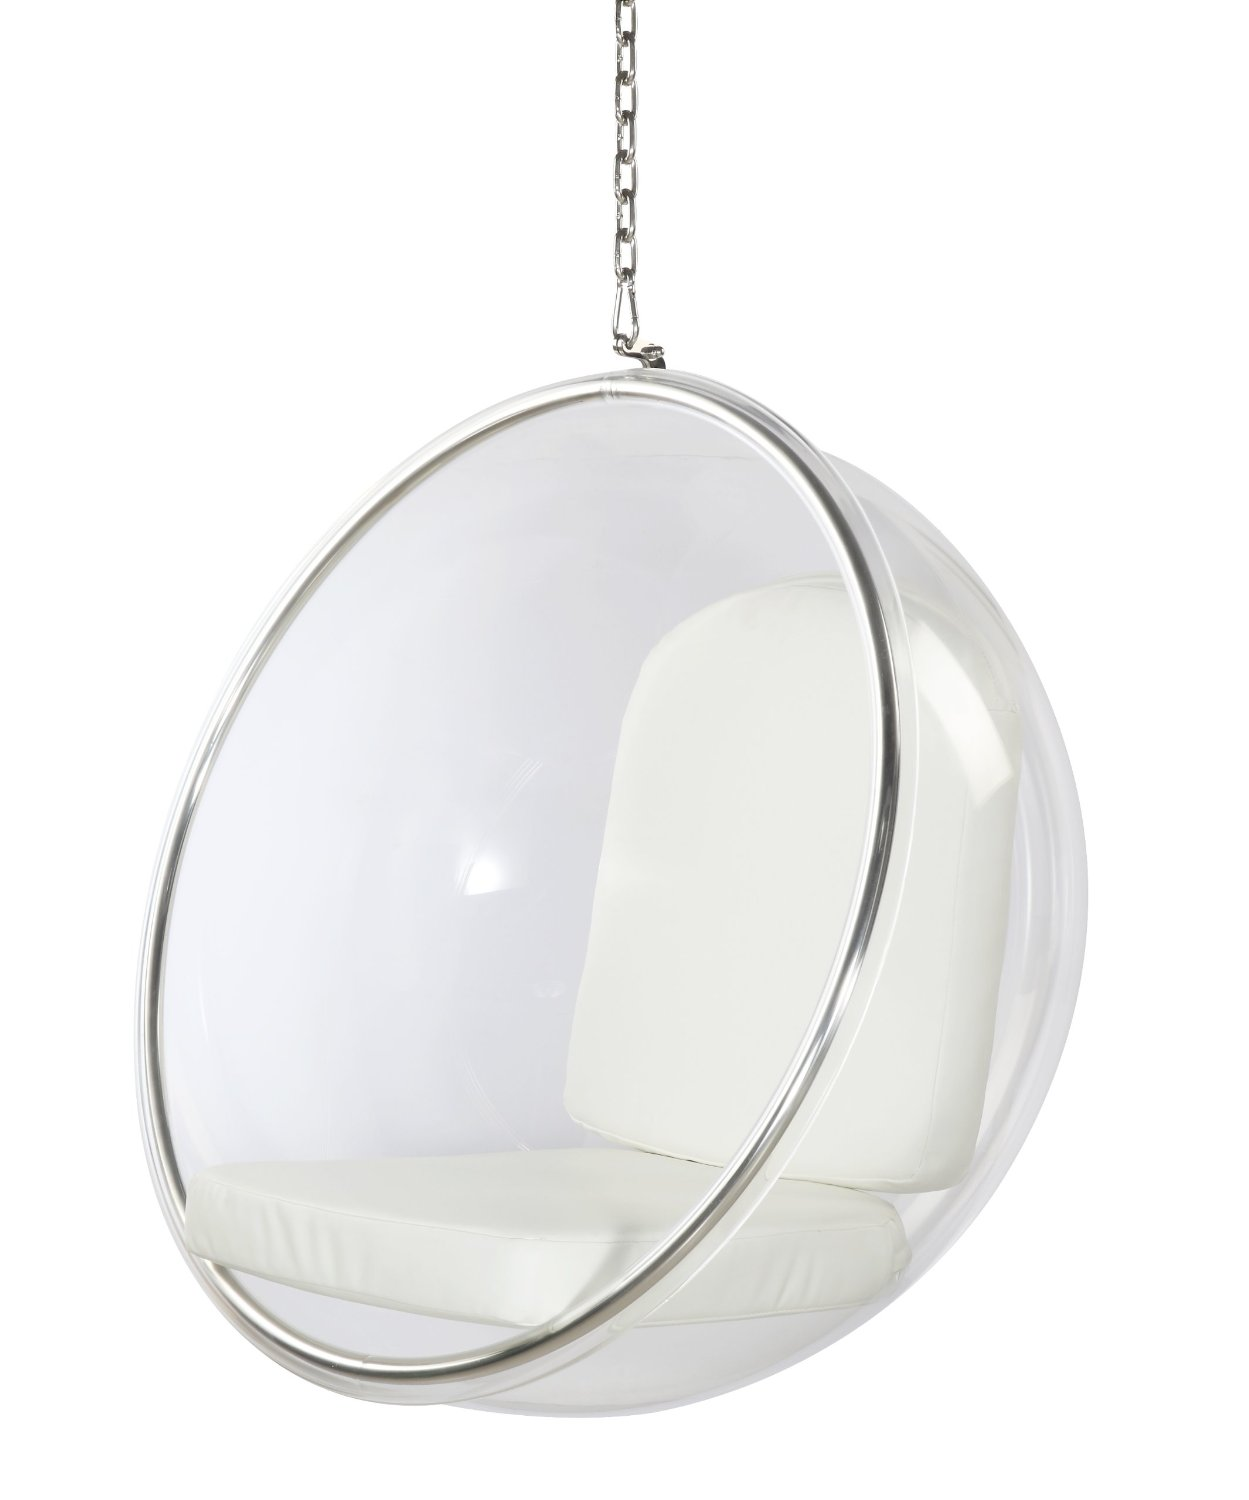 transpared bubble chair